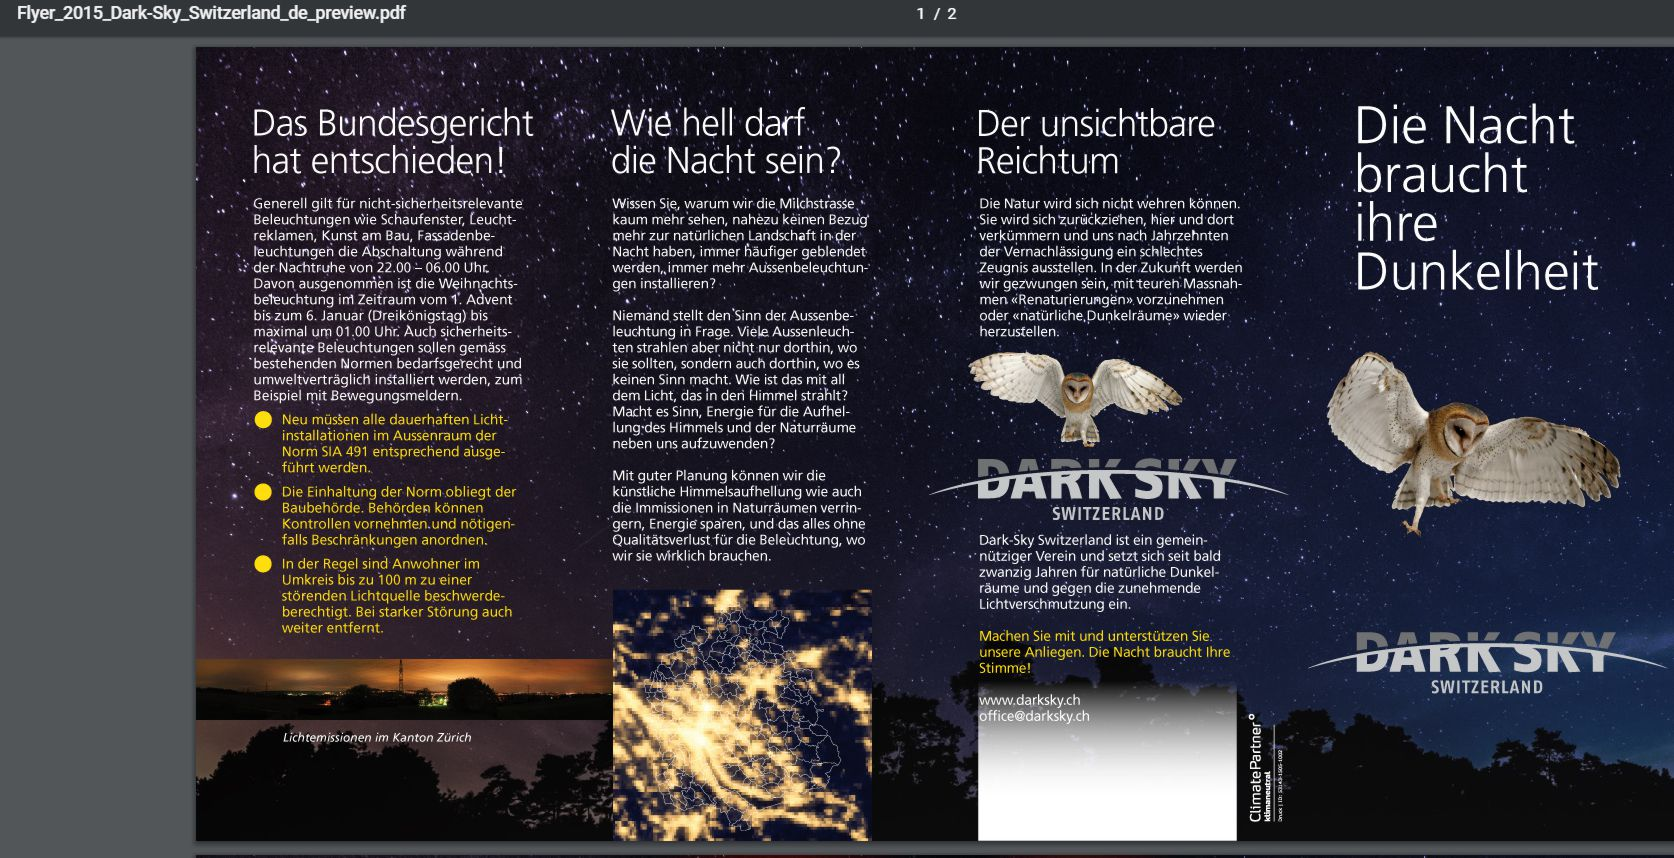 http://www.darksky.ch/fileadmin/dss/assets/dokumente/flyers/Flyer_2015_Dark-Sky_Switzerland_de_preview.pdf